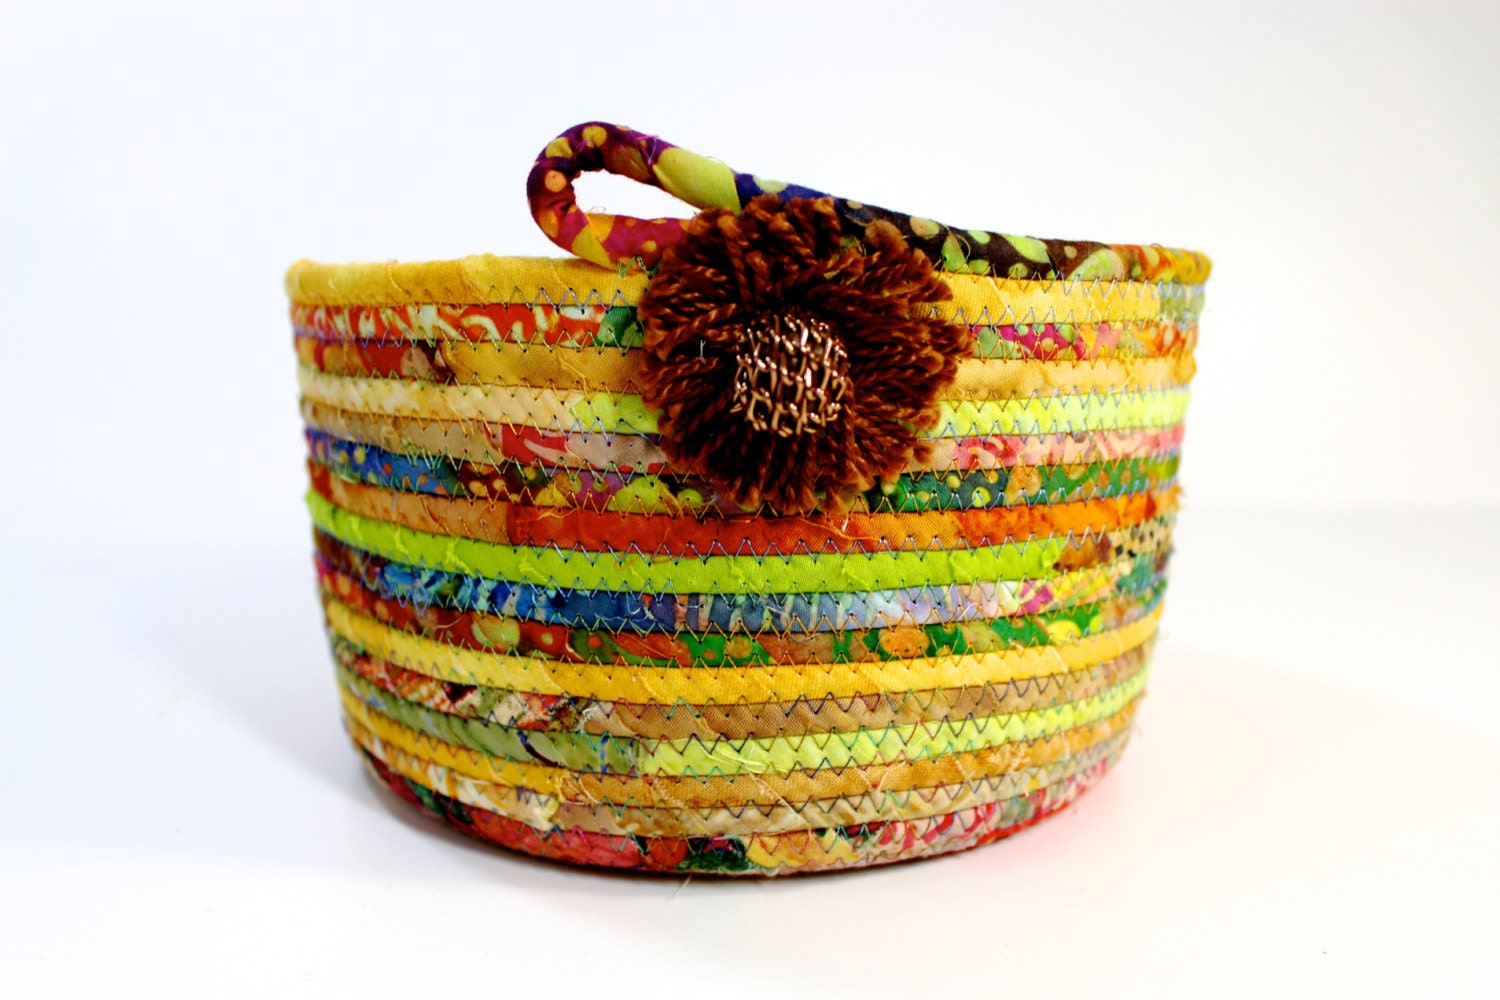 Handmade Rope Basket : Scrappy coiled rope basket bowl handmade by sallymanke on etsy